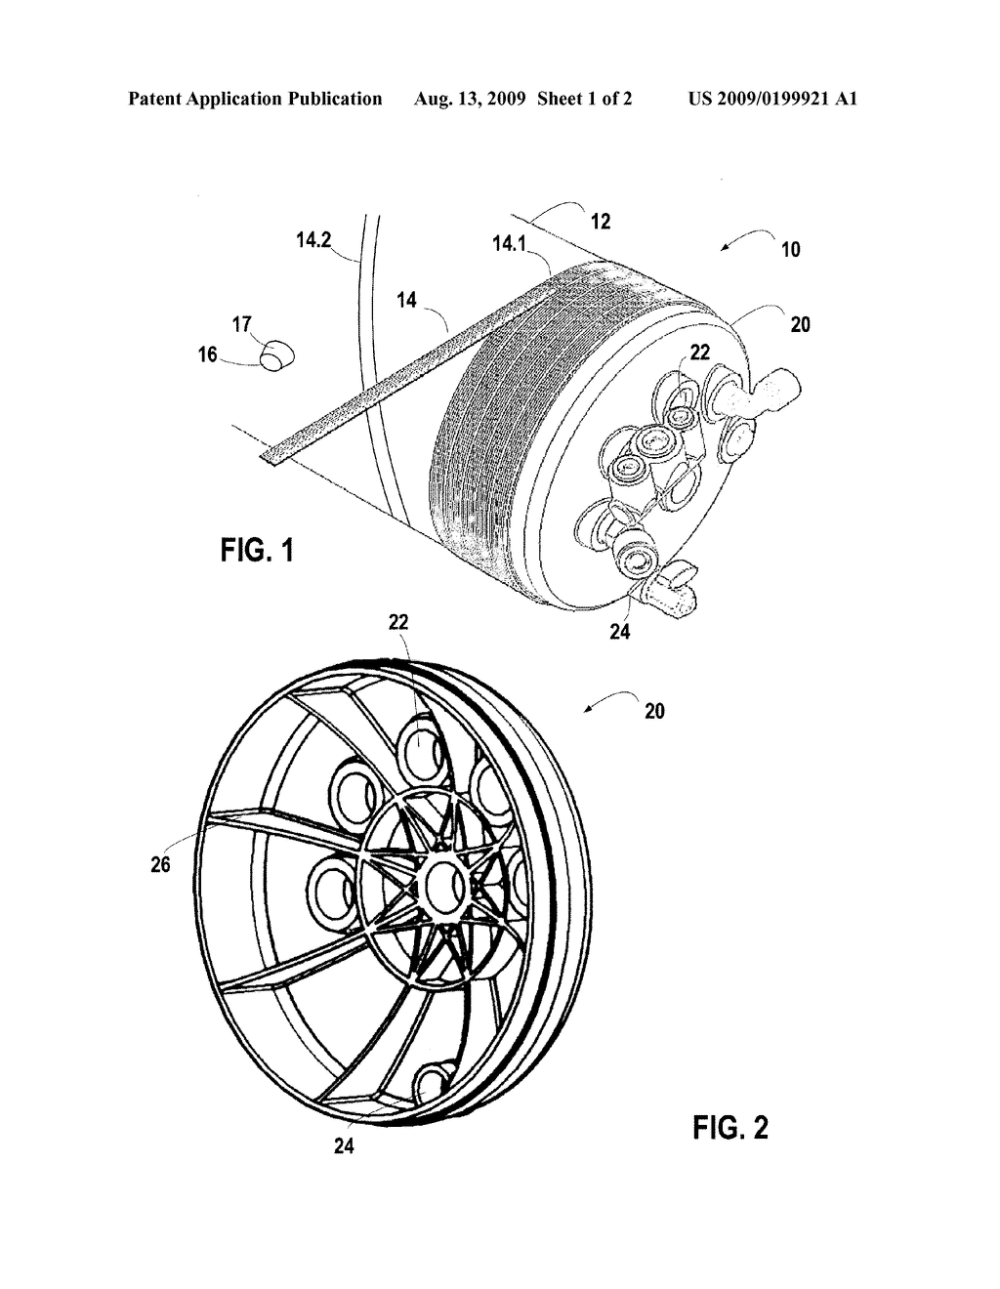 medium resolution of composite air tank for vehicle air brake and method for manufacturing diagram schematic and image 02